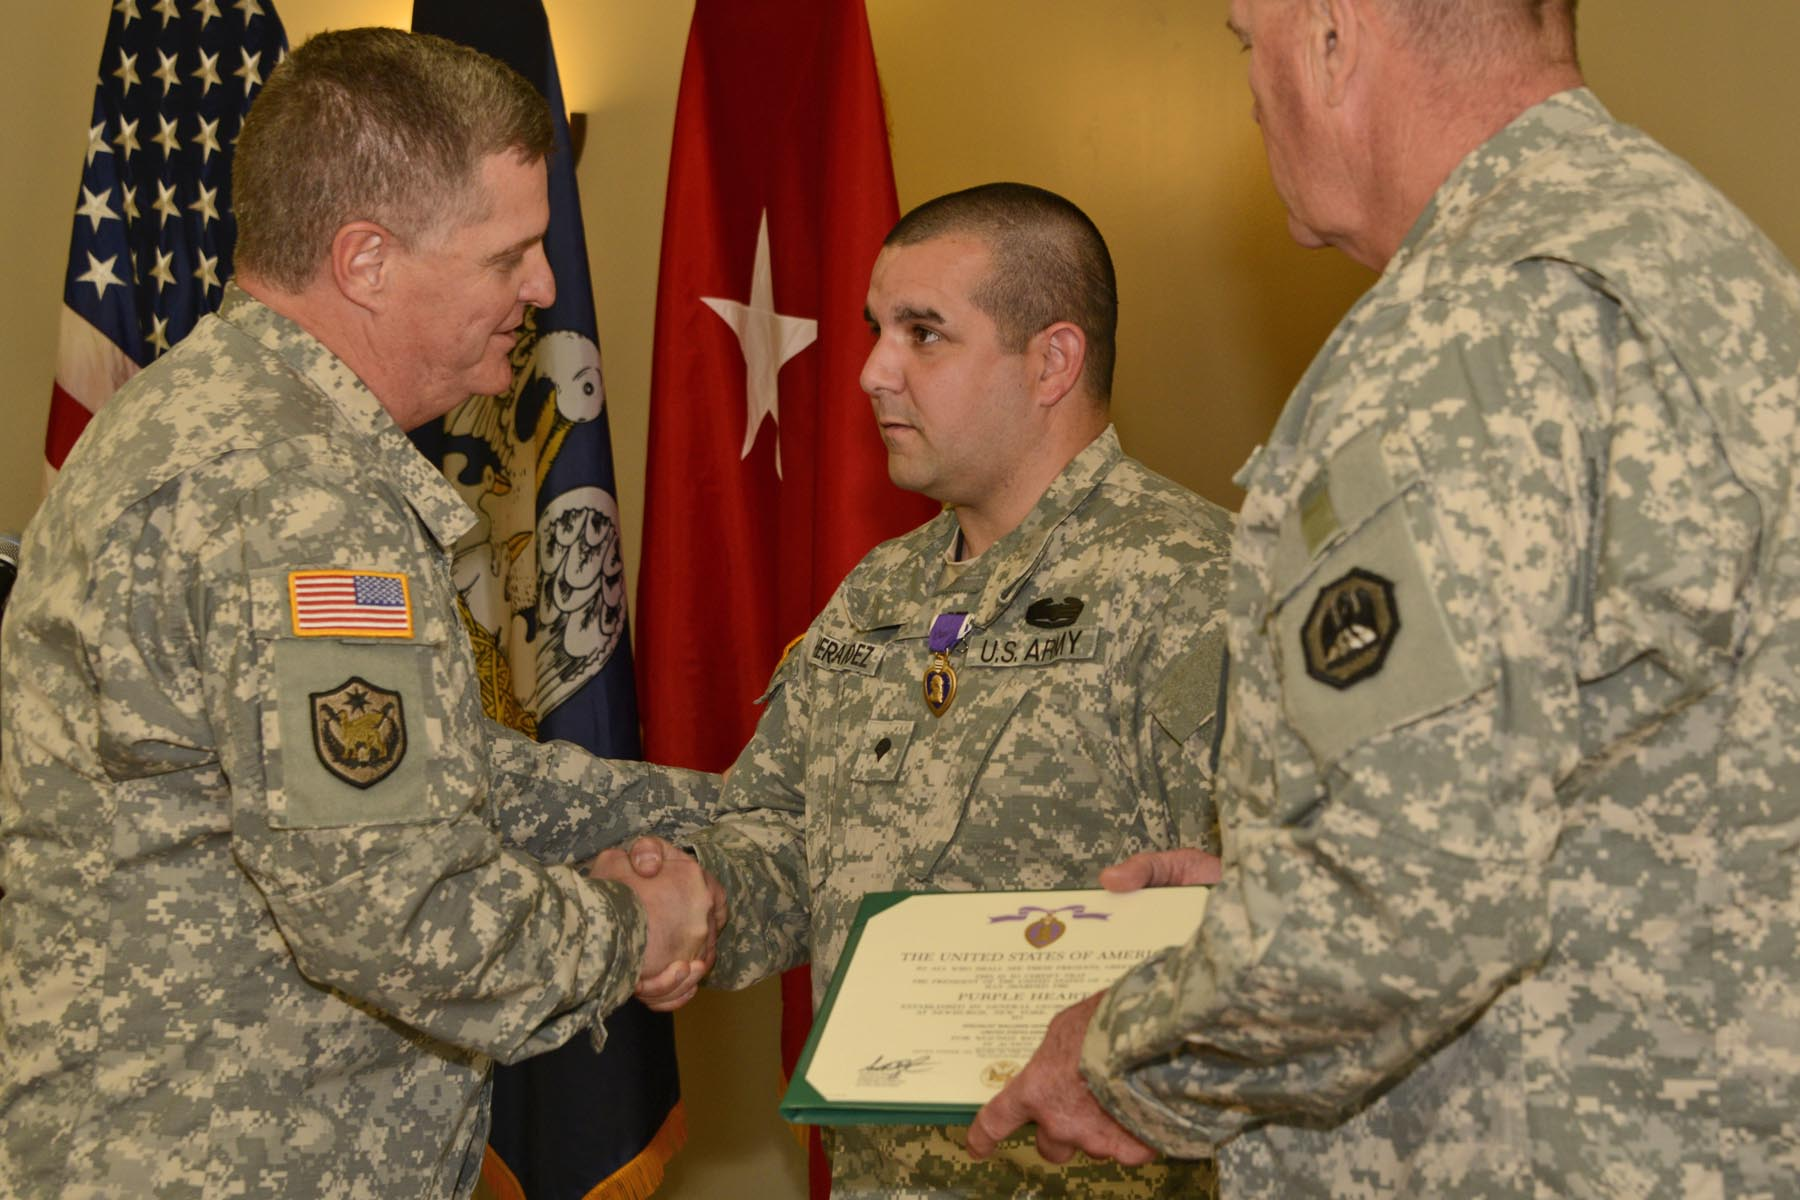 Guardsmen receive the Purple Heart during official ceremony